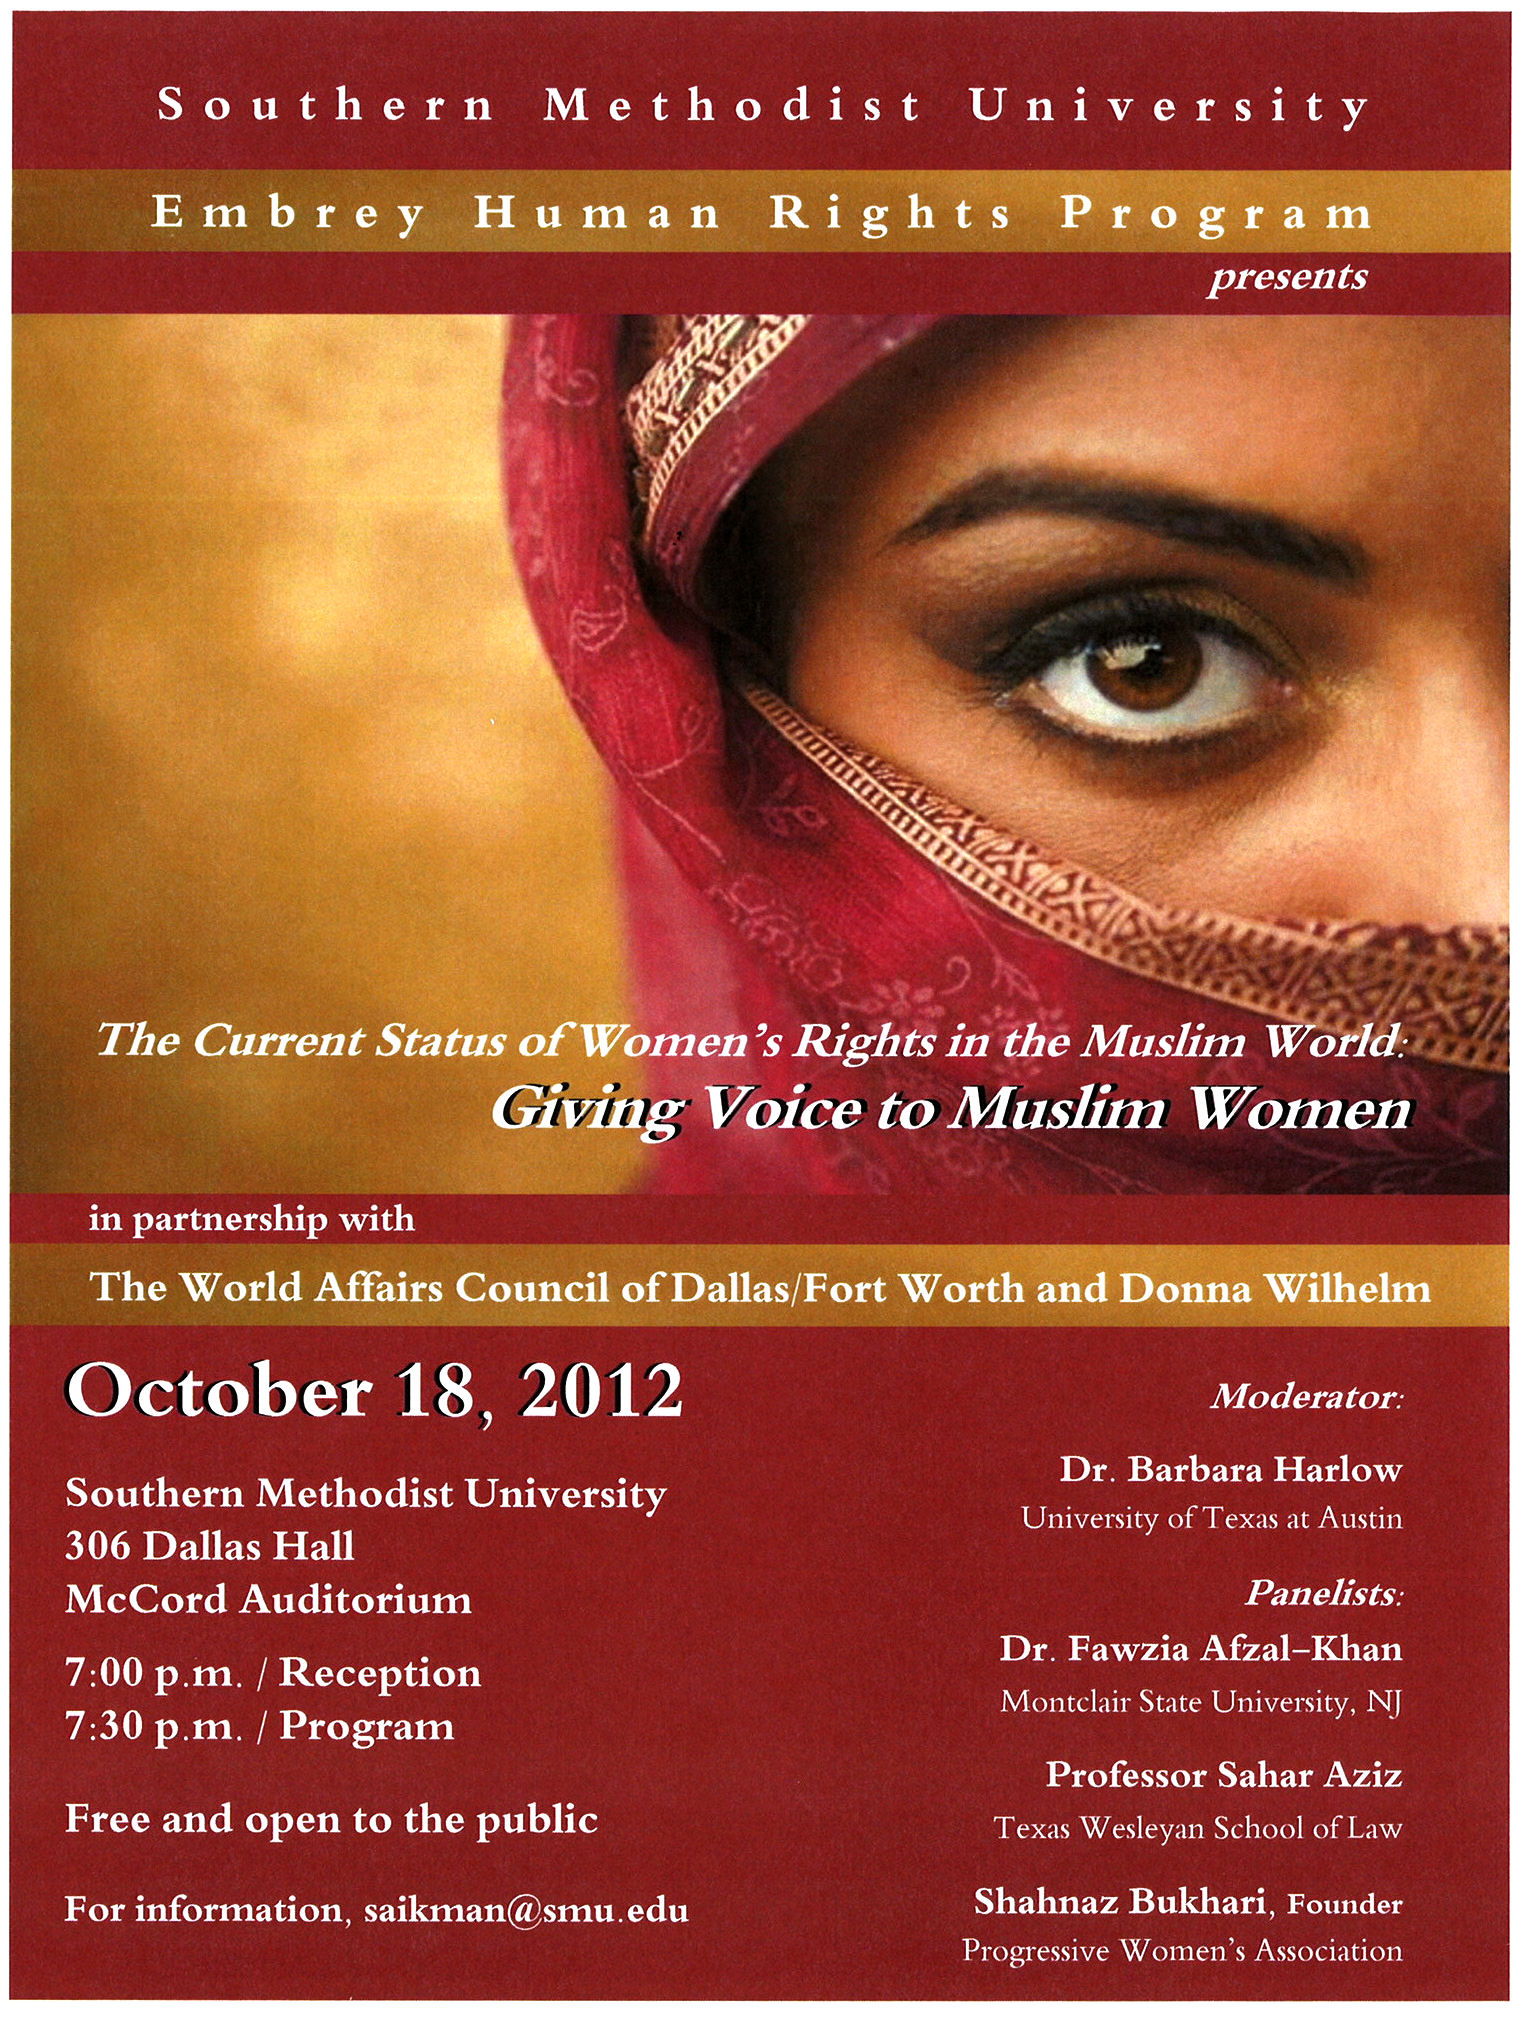 Women's Rights in a Muslim World